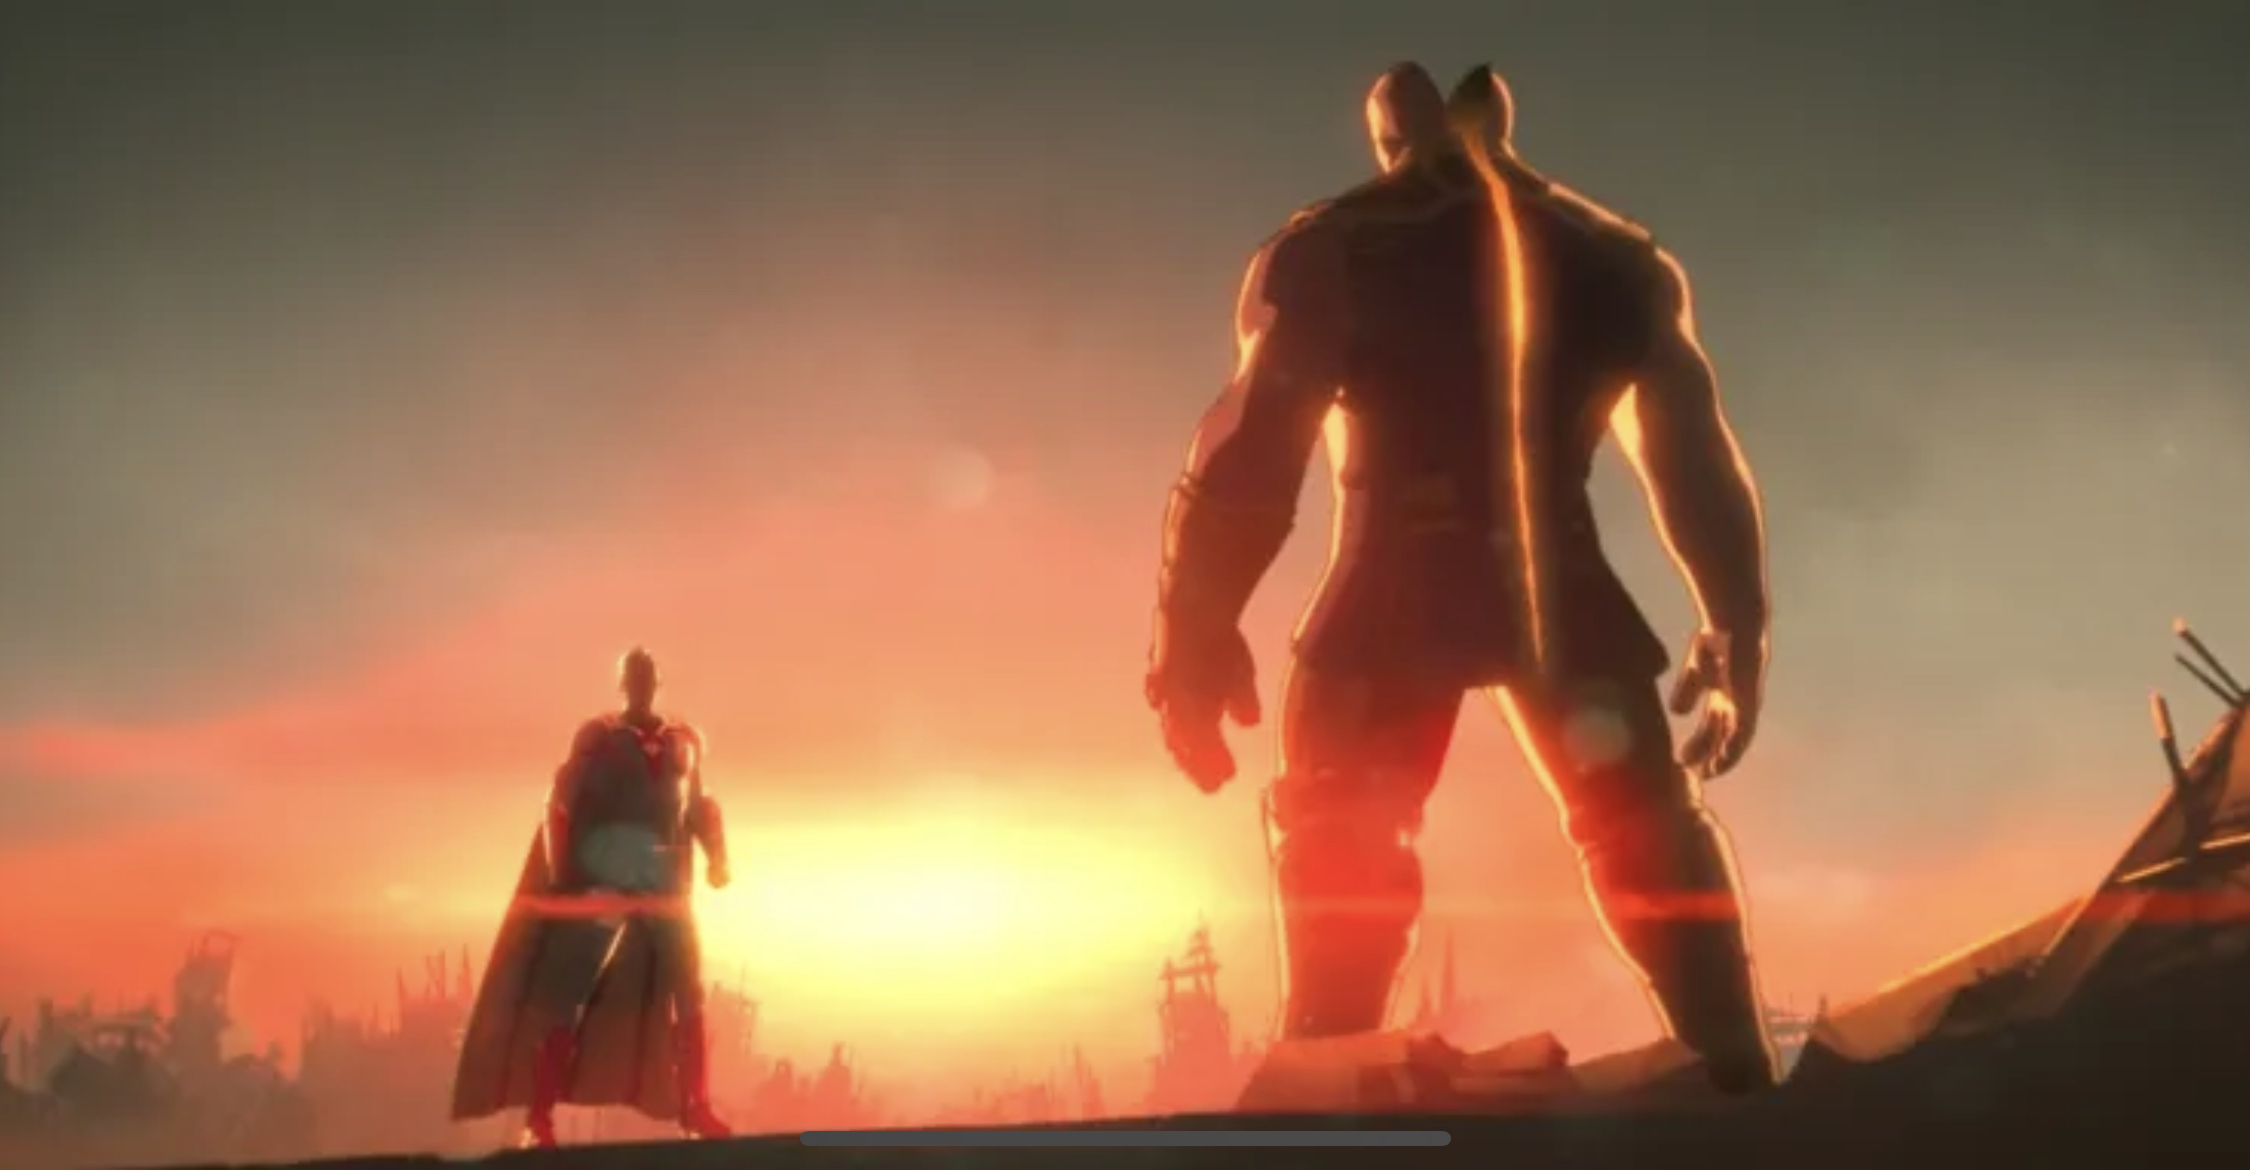 Ultron splits Thanos in half with a single beam